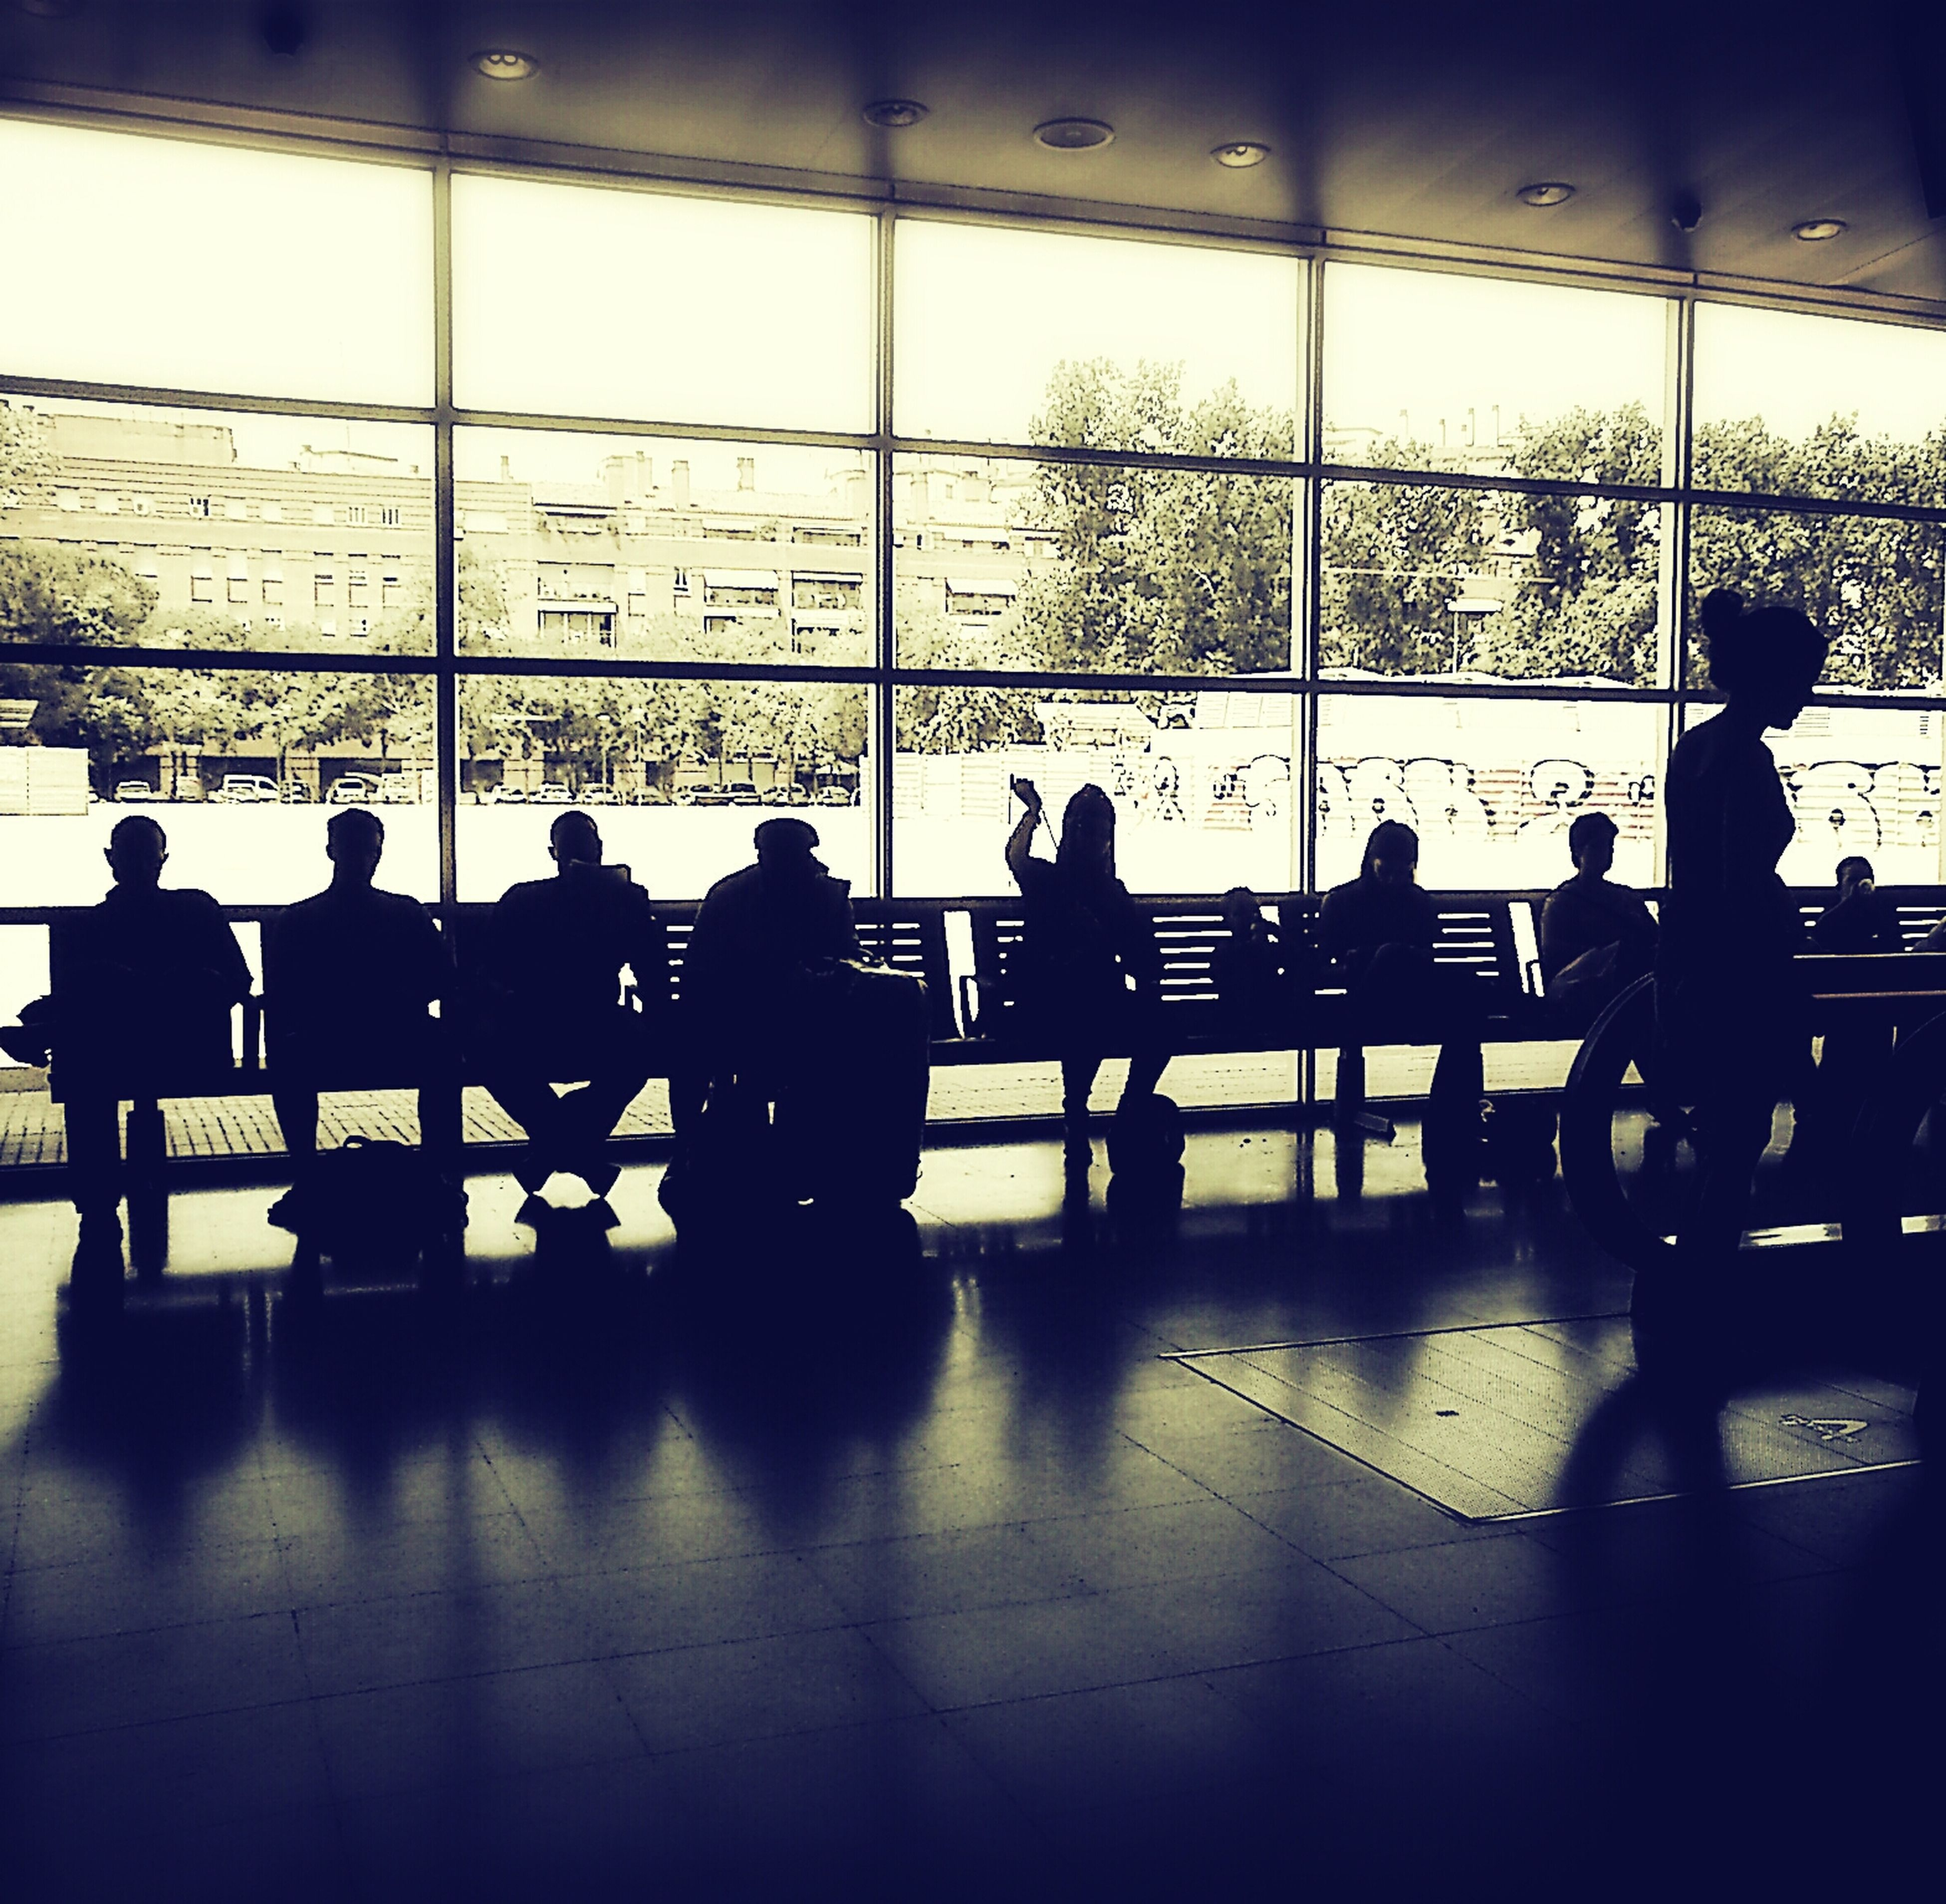 indoors, men, airport, silhouette, person, window, lifestyles, large group of people, glass - material, medium group of people, chair, sitting, leisure activity, transparent, waiting, city, tiled floor, transportation